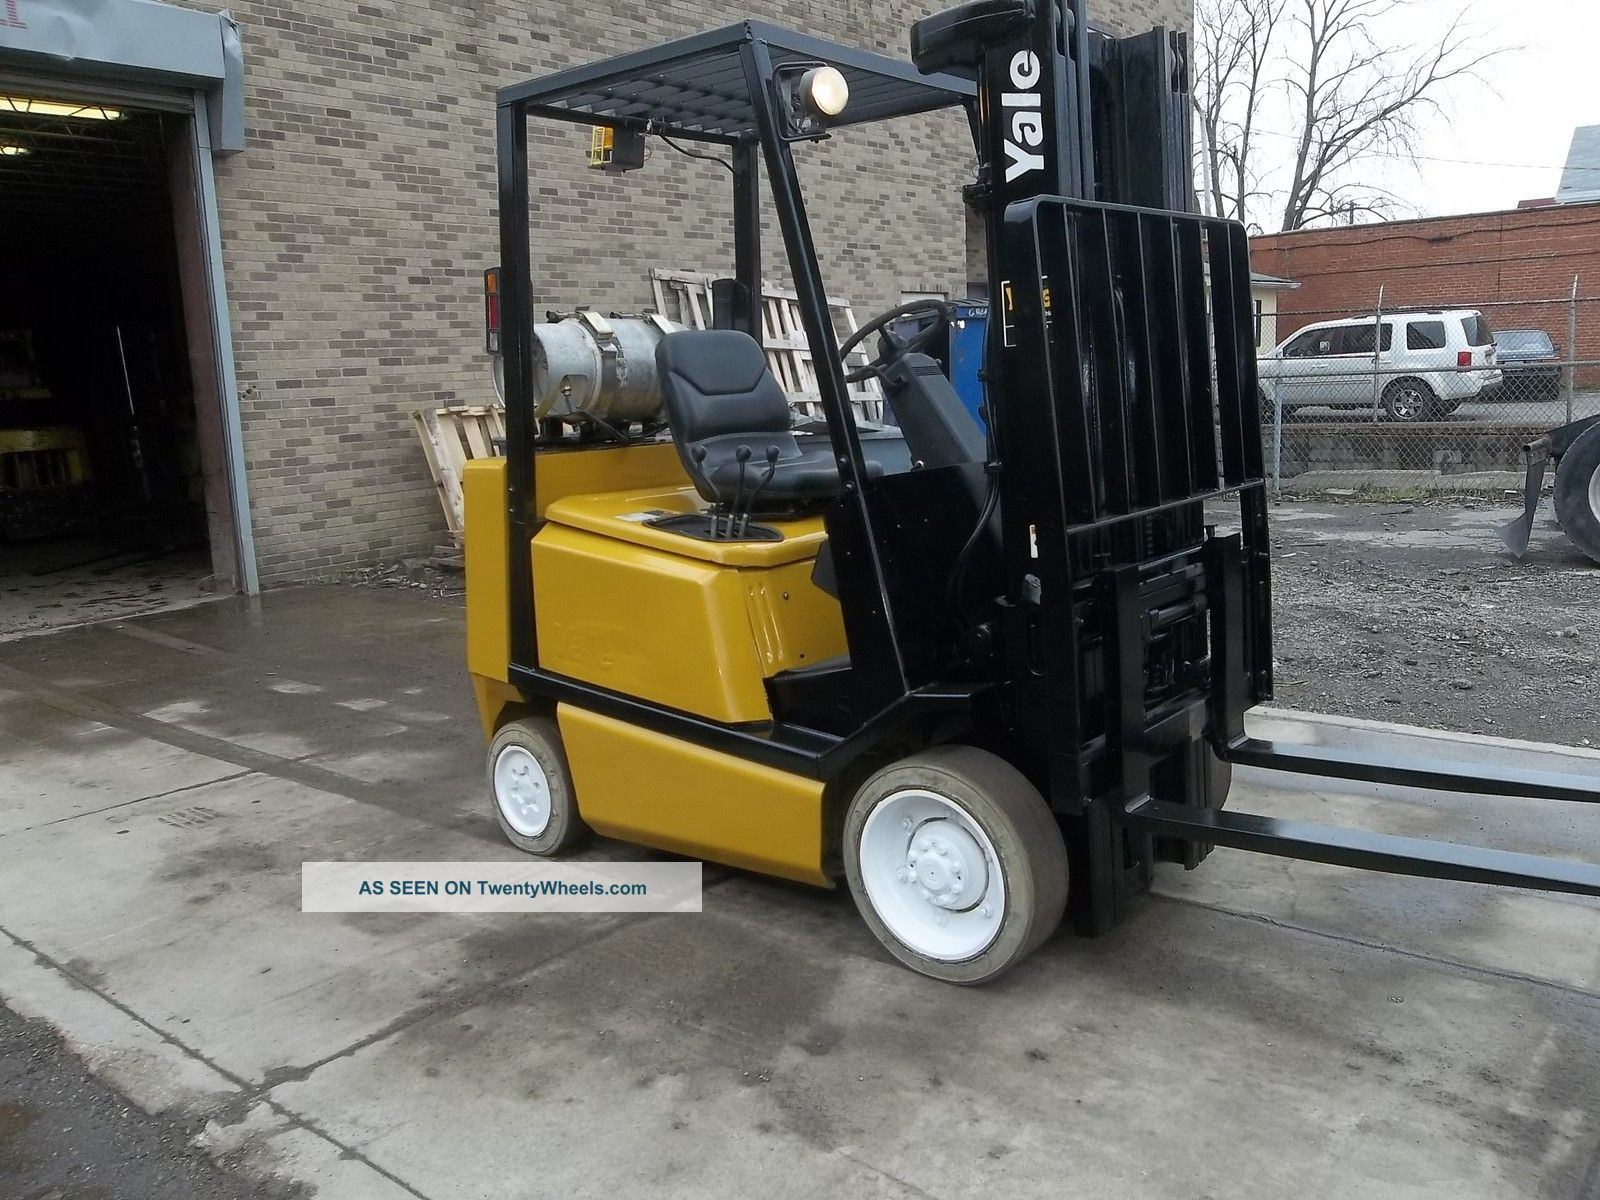 Yale Forklift 5000 Lb 3 Stage Mast Max Lift 189 Glco50 Forklifts & Other Lifts photo